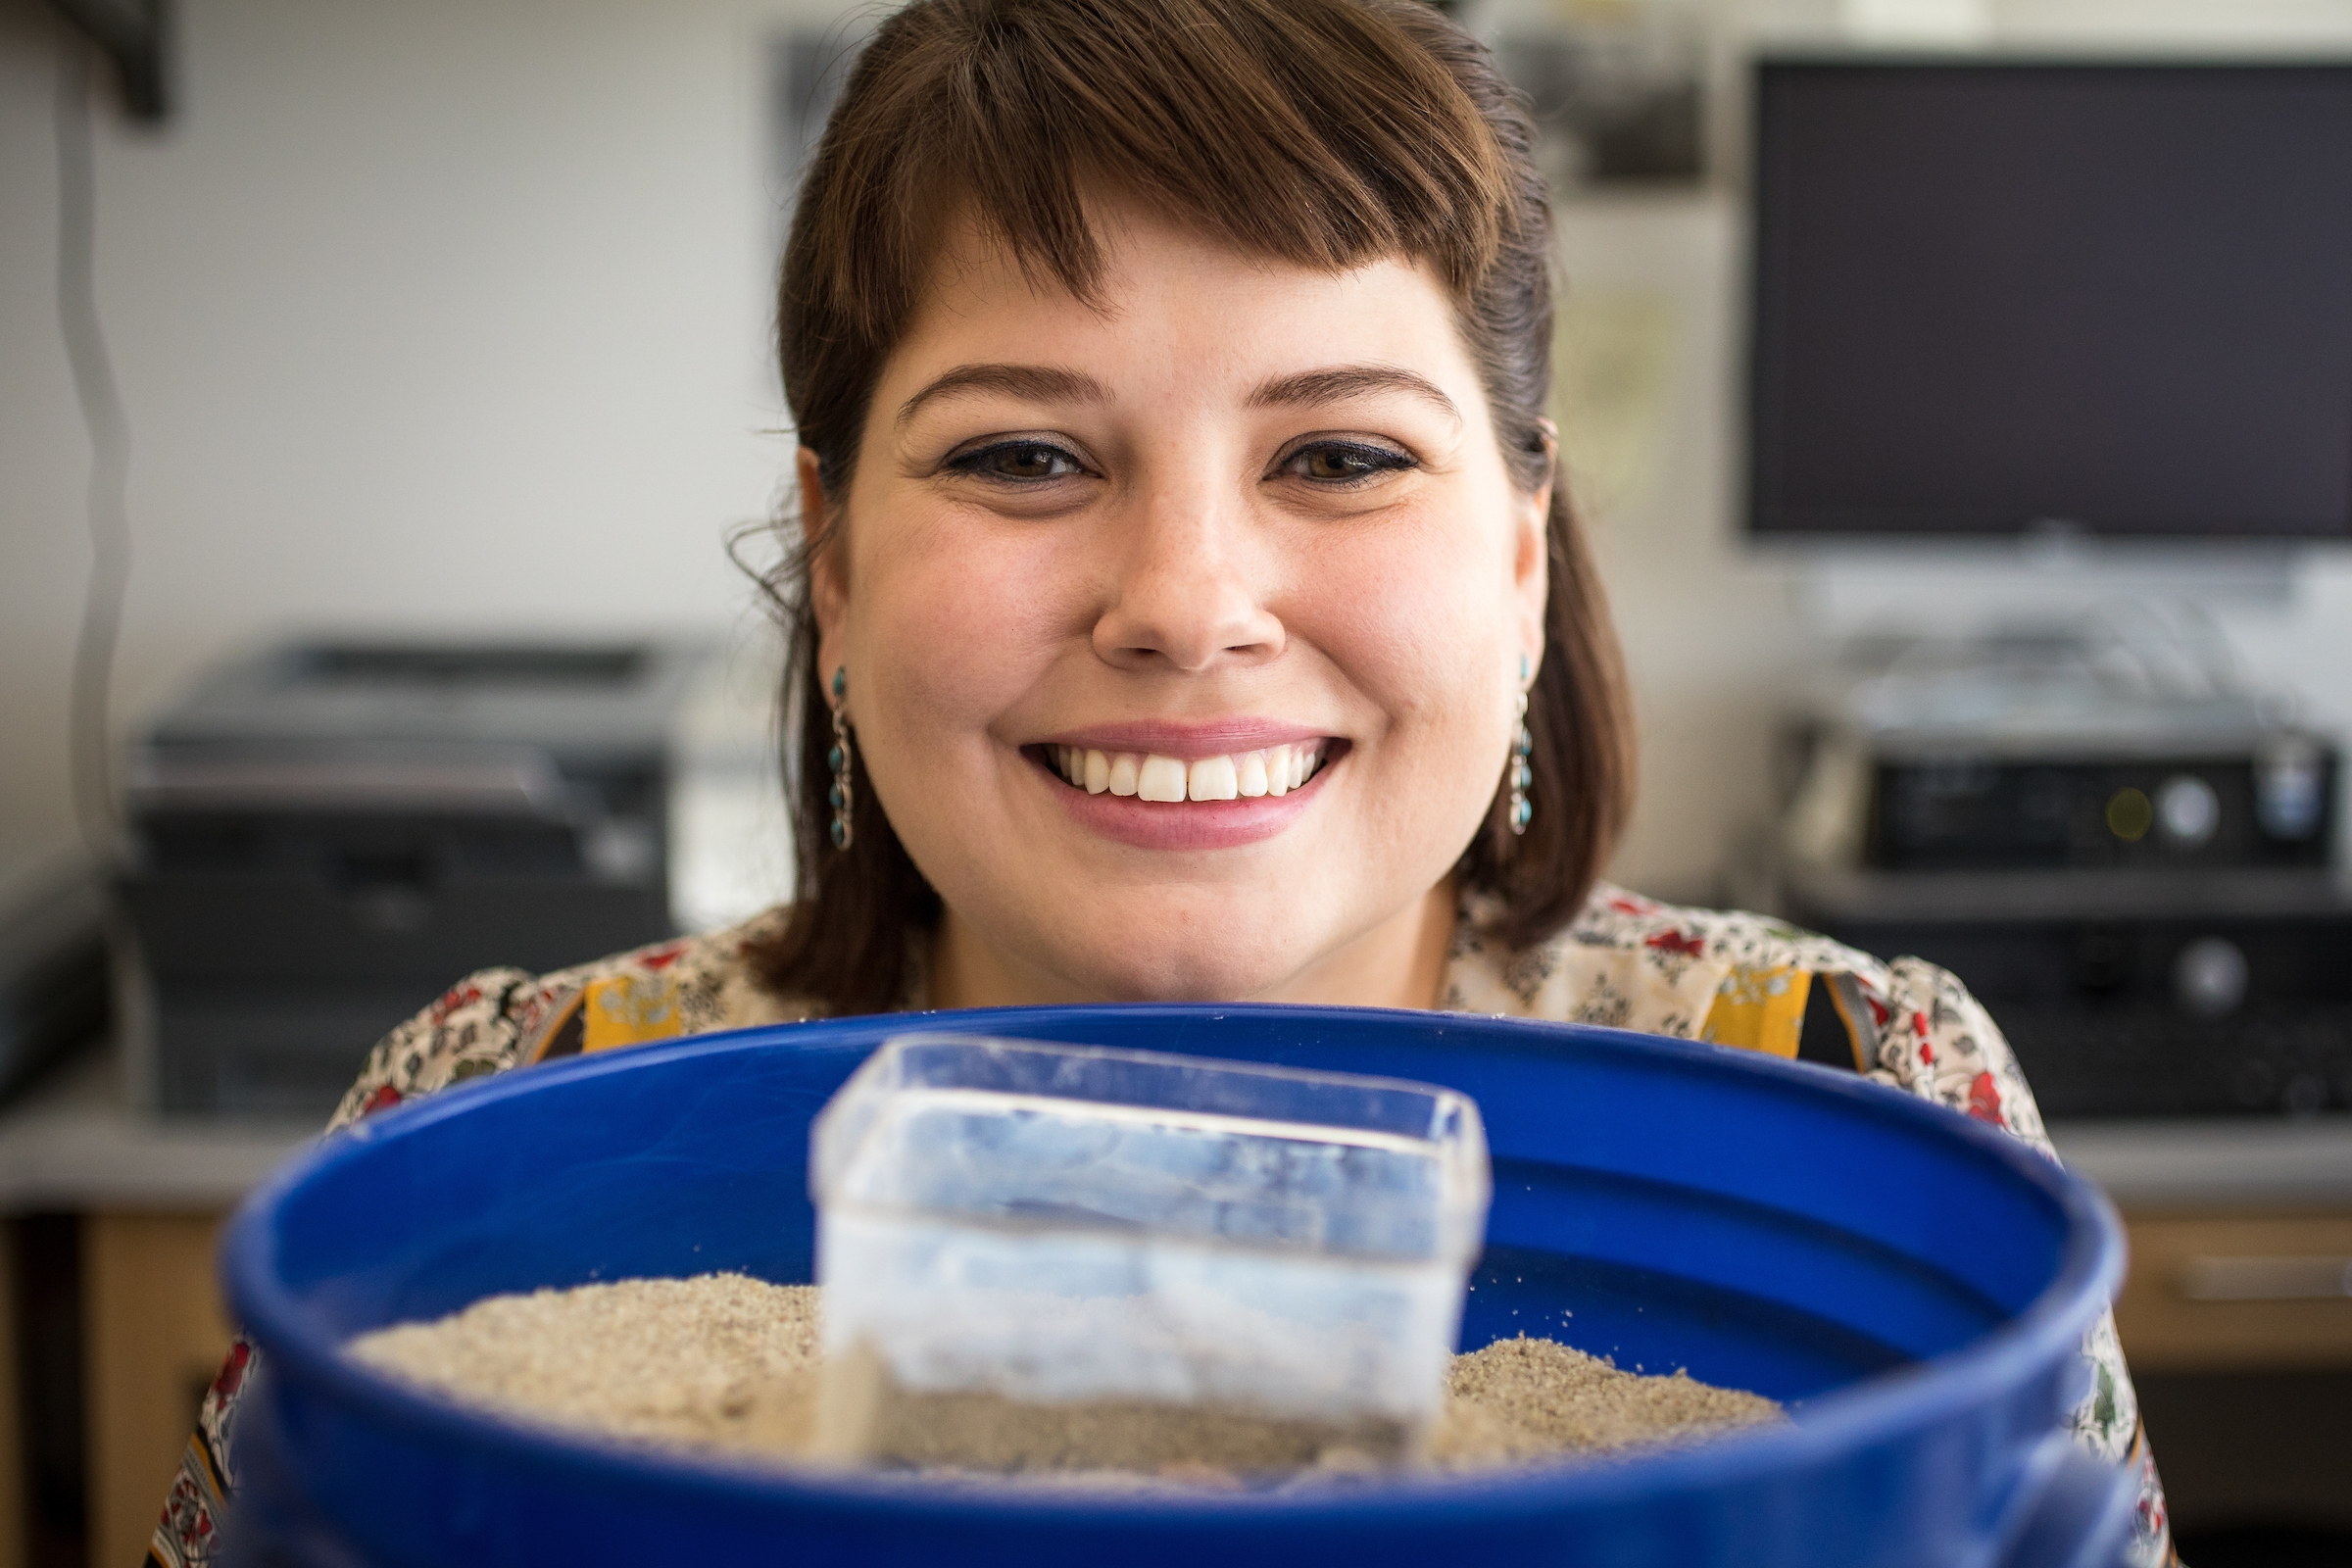 Christina Kwapich ASU School of Life Sciences ant researcher